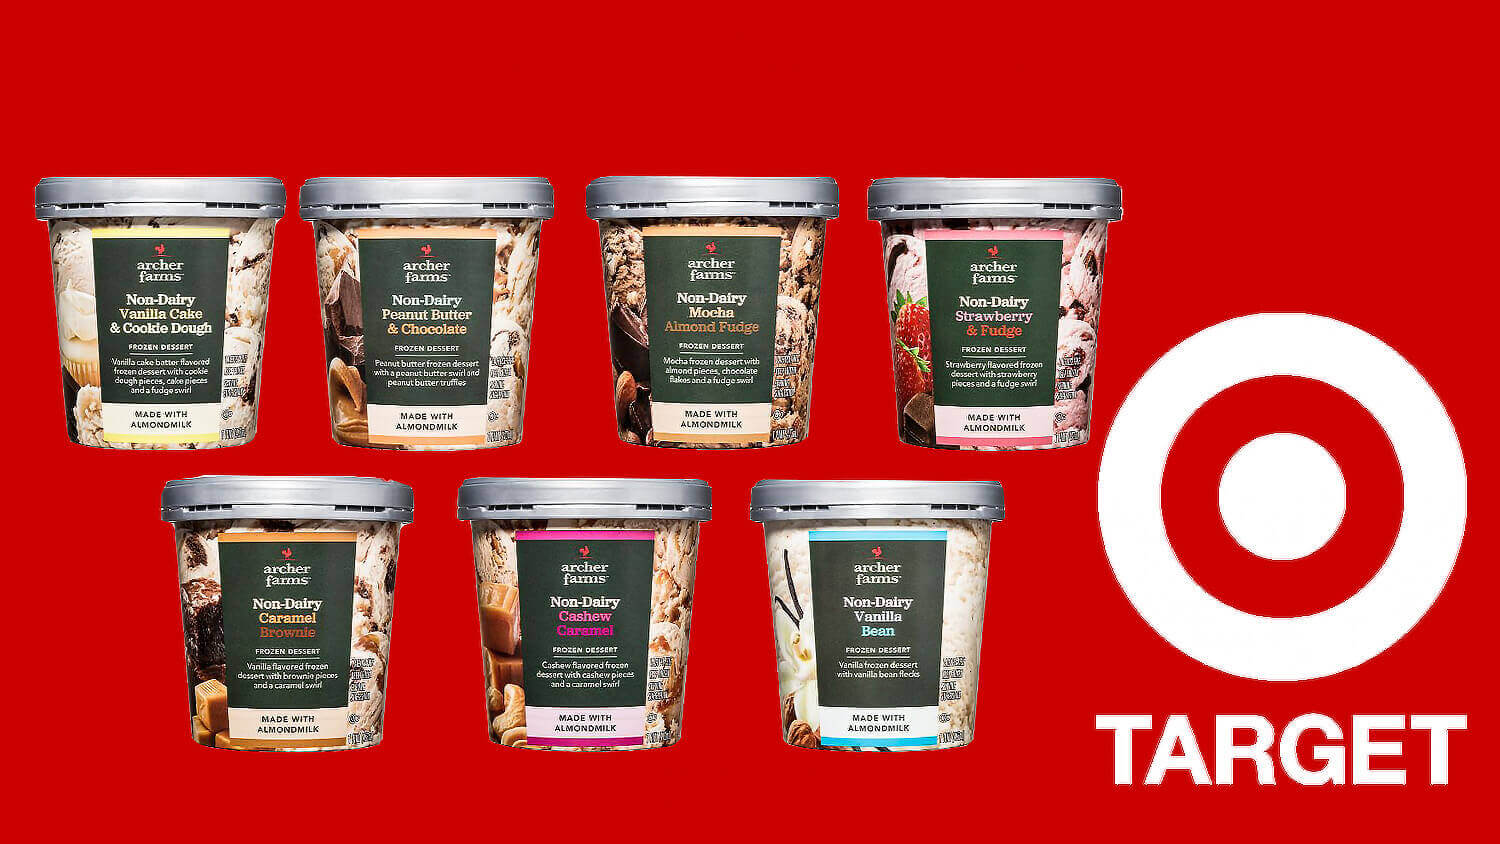 Target Expands Vegan Options With New Archer Farms Non-Dairy Almond Ice Cream Flavors